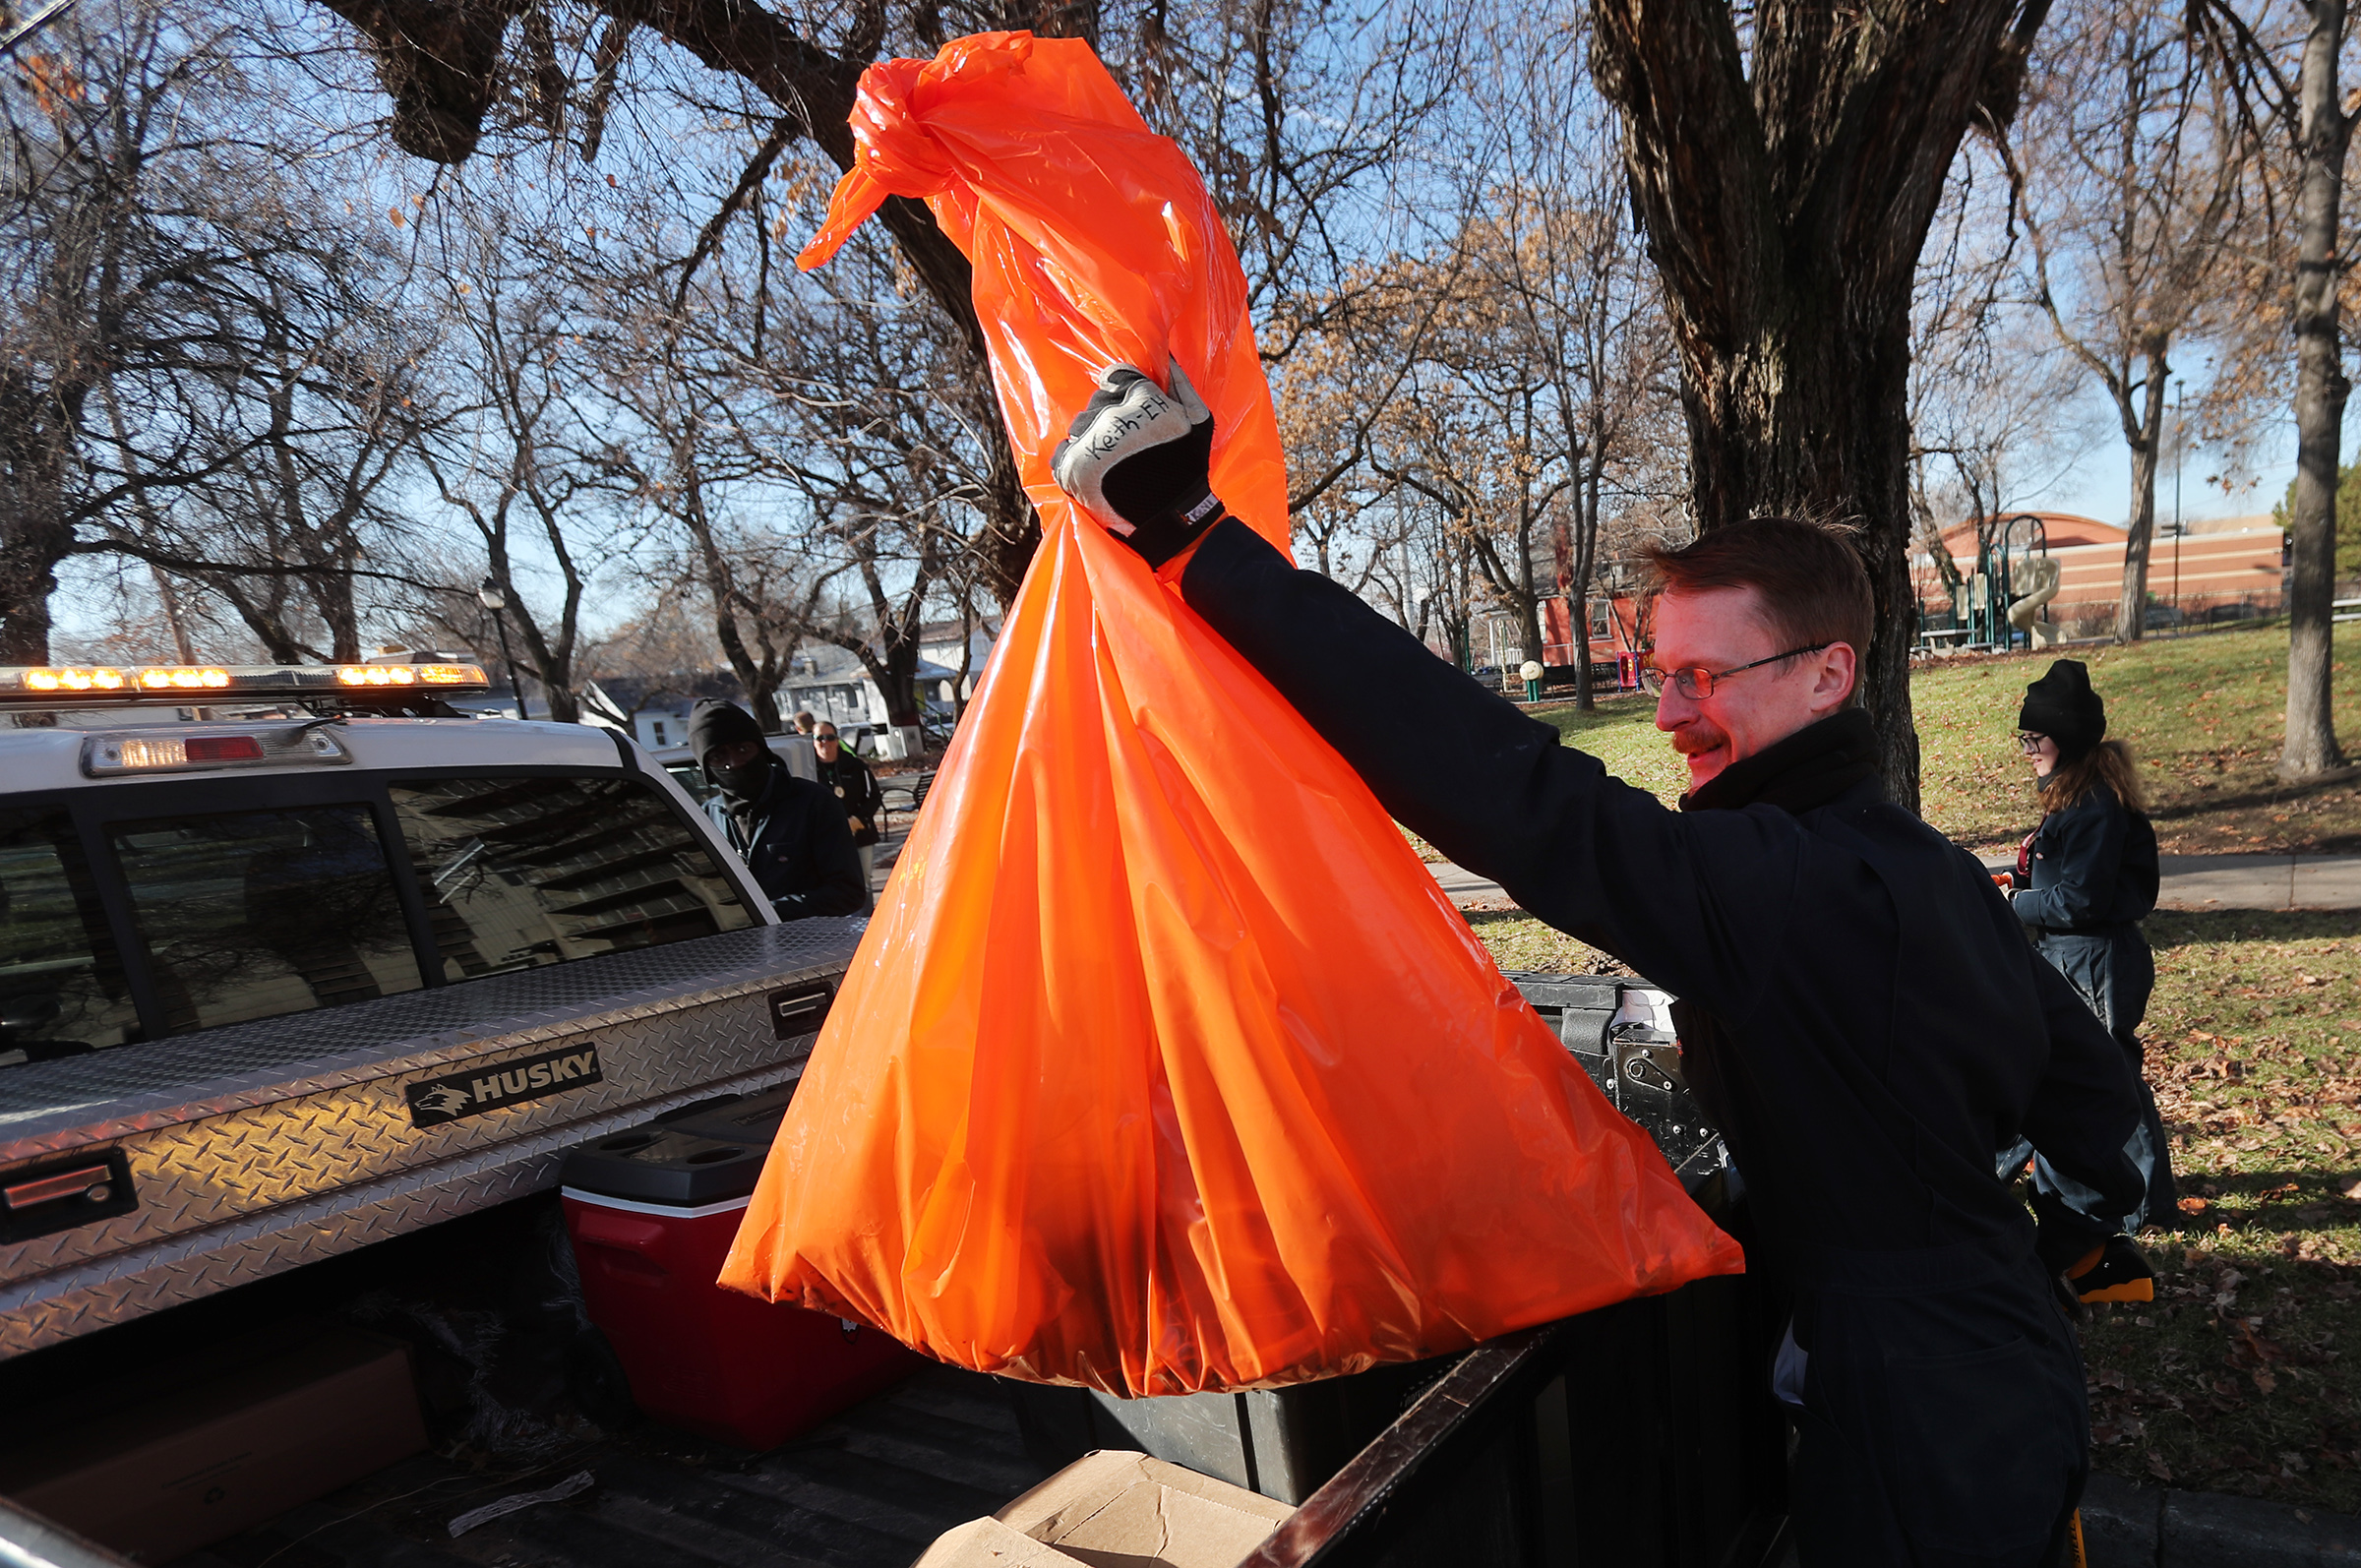 Keith Neijstrom, an environmental health technician, puts a bag of trash into the back of a truck as health department officials, Utah Highway Patrol troopers and Salt Lake City police officers clean up a homelss camp in Salt Lake City on Tuesday, Dec. 10, 2019.